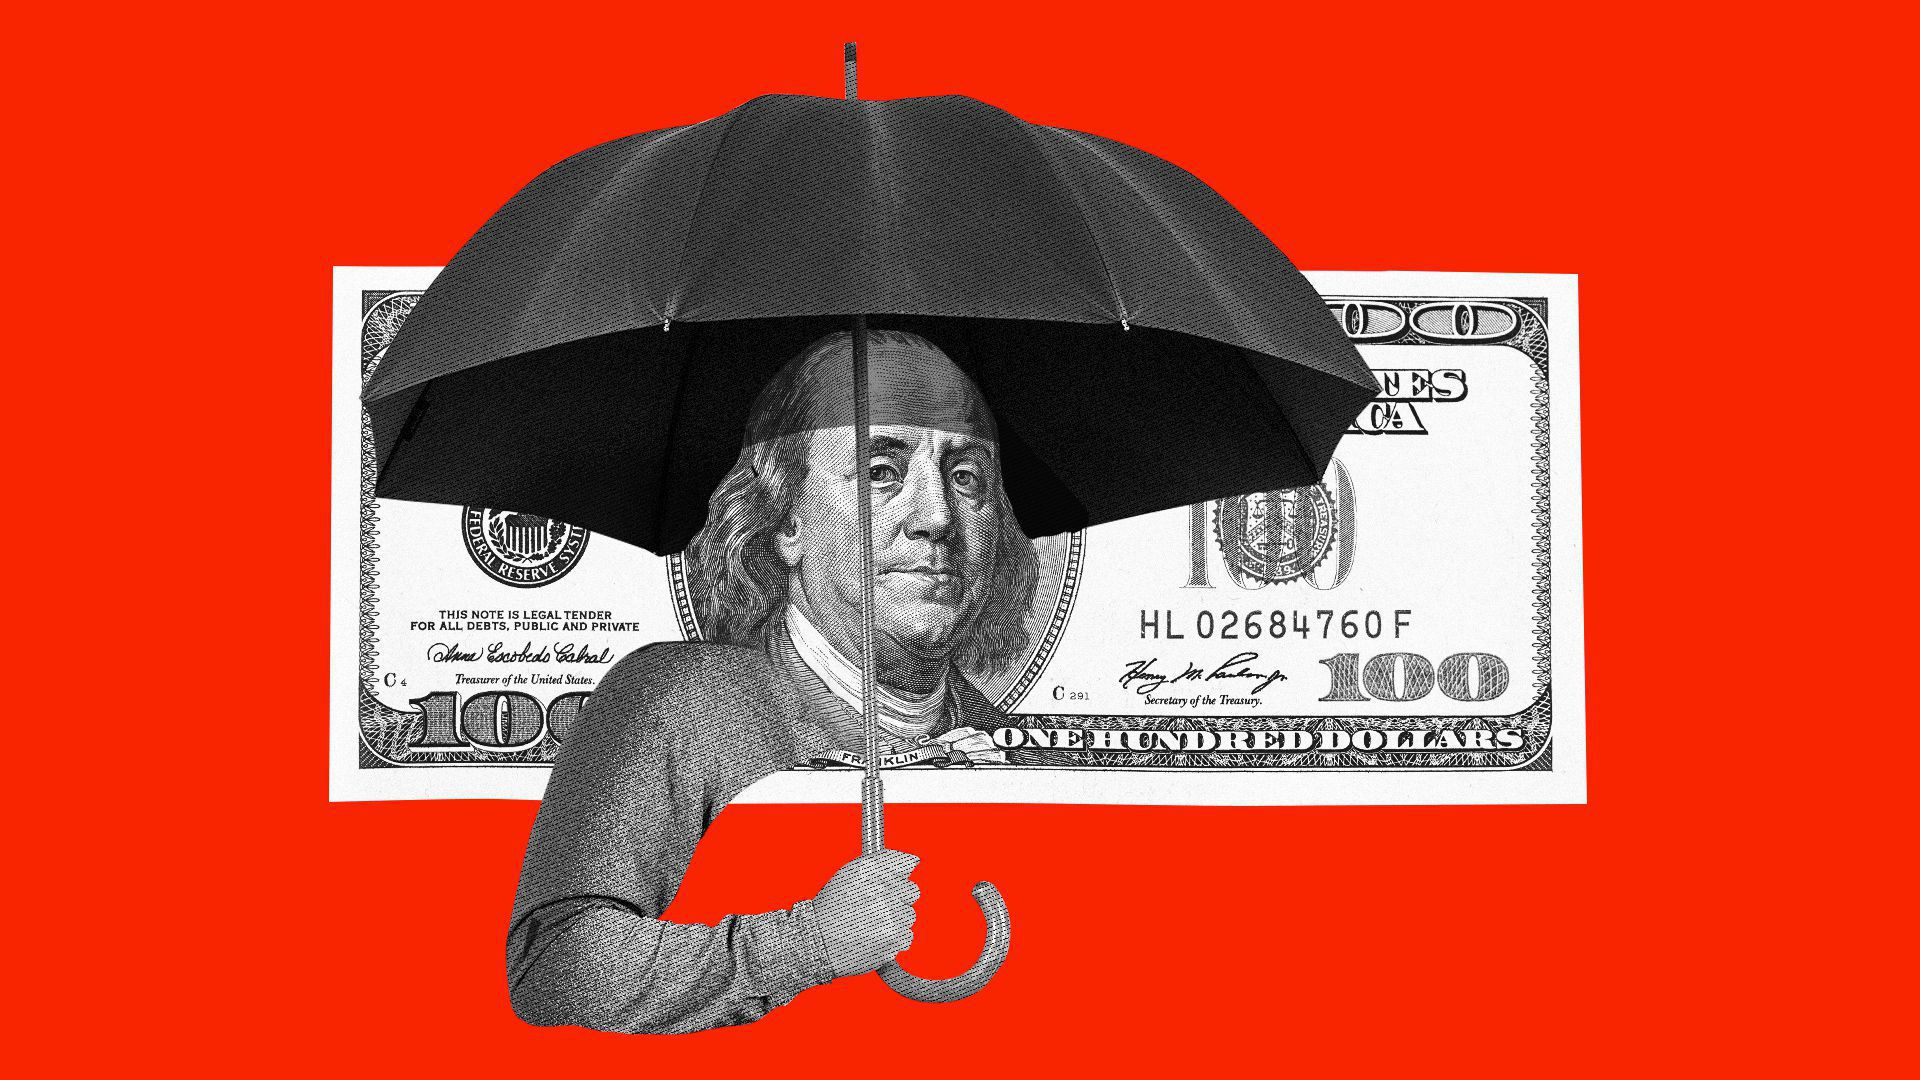 Benjamin Franklin holding an umbrella on a $100 bill, in front of a red background.